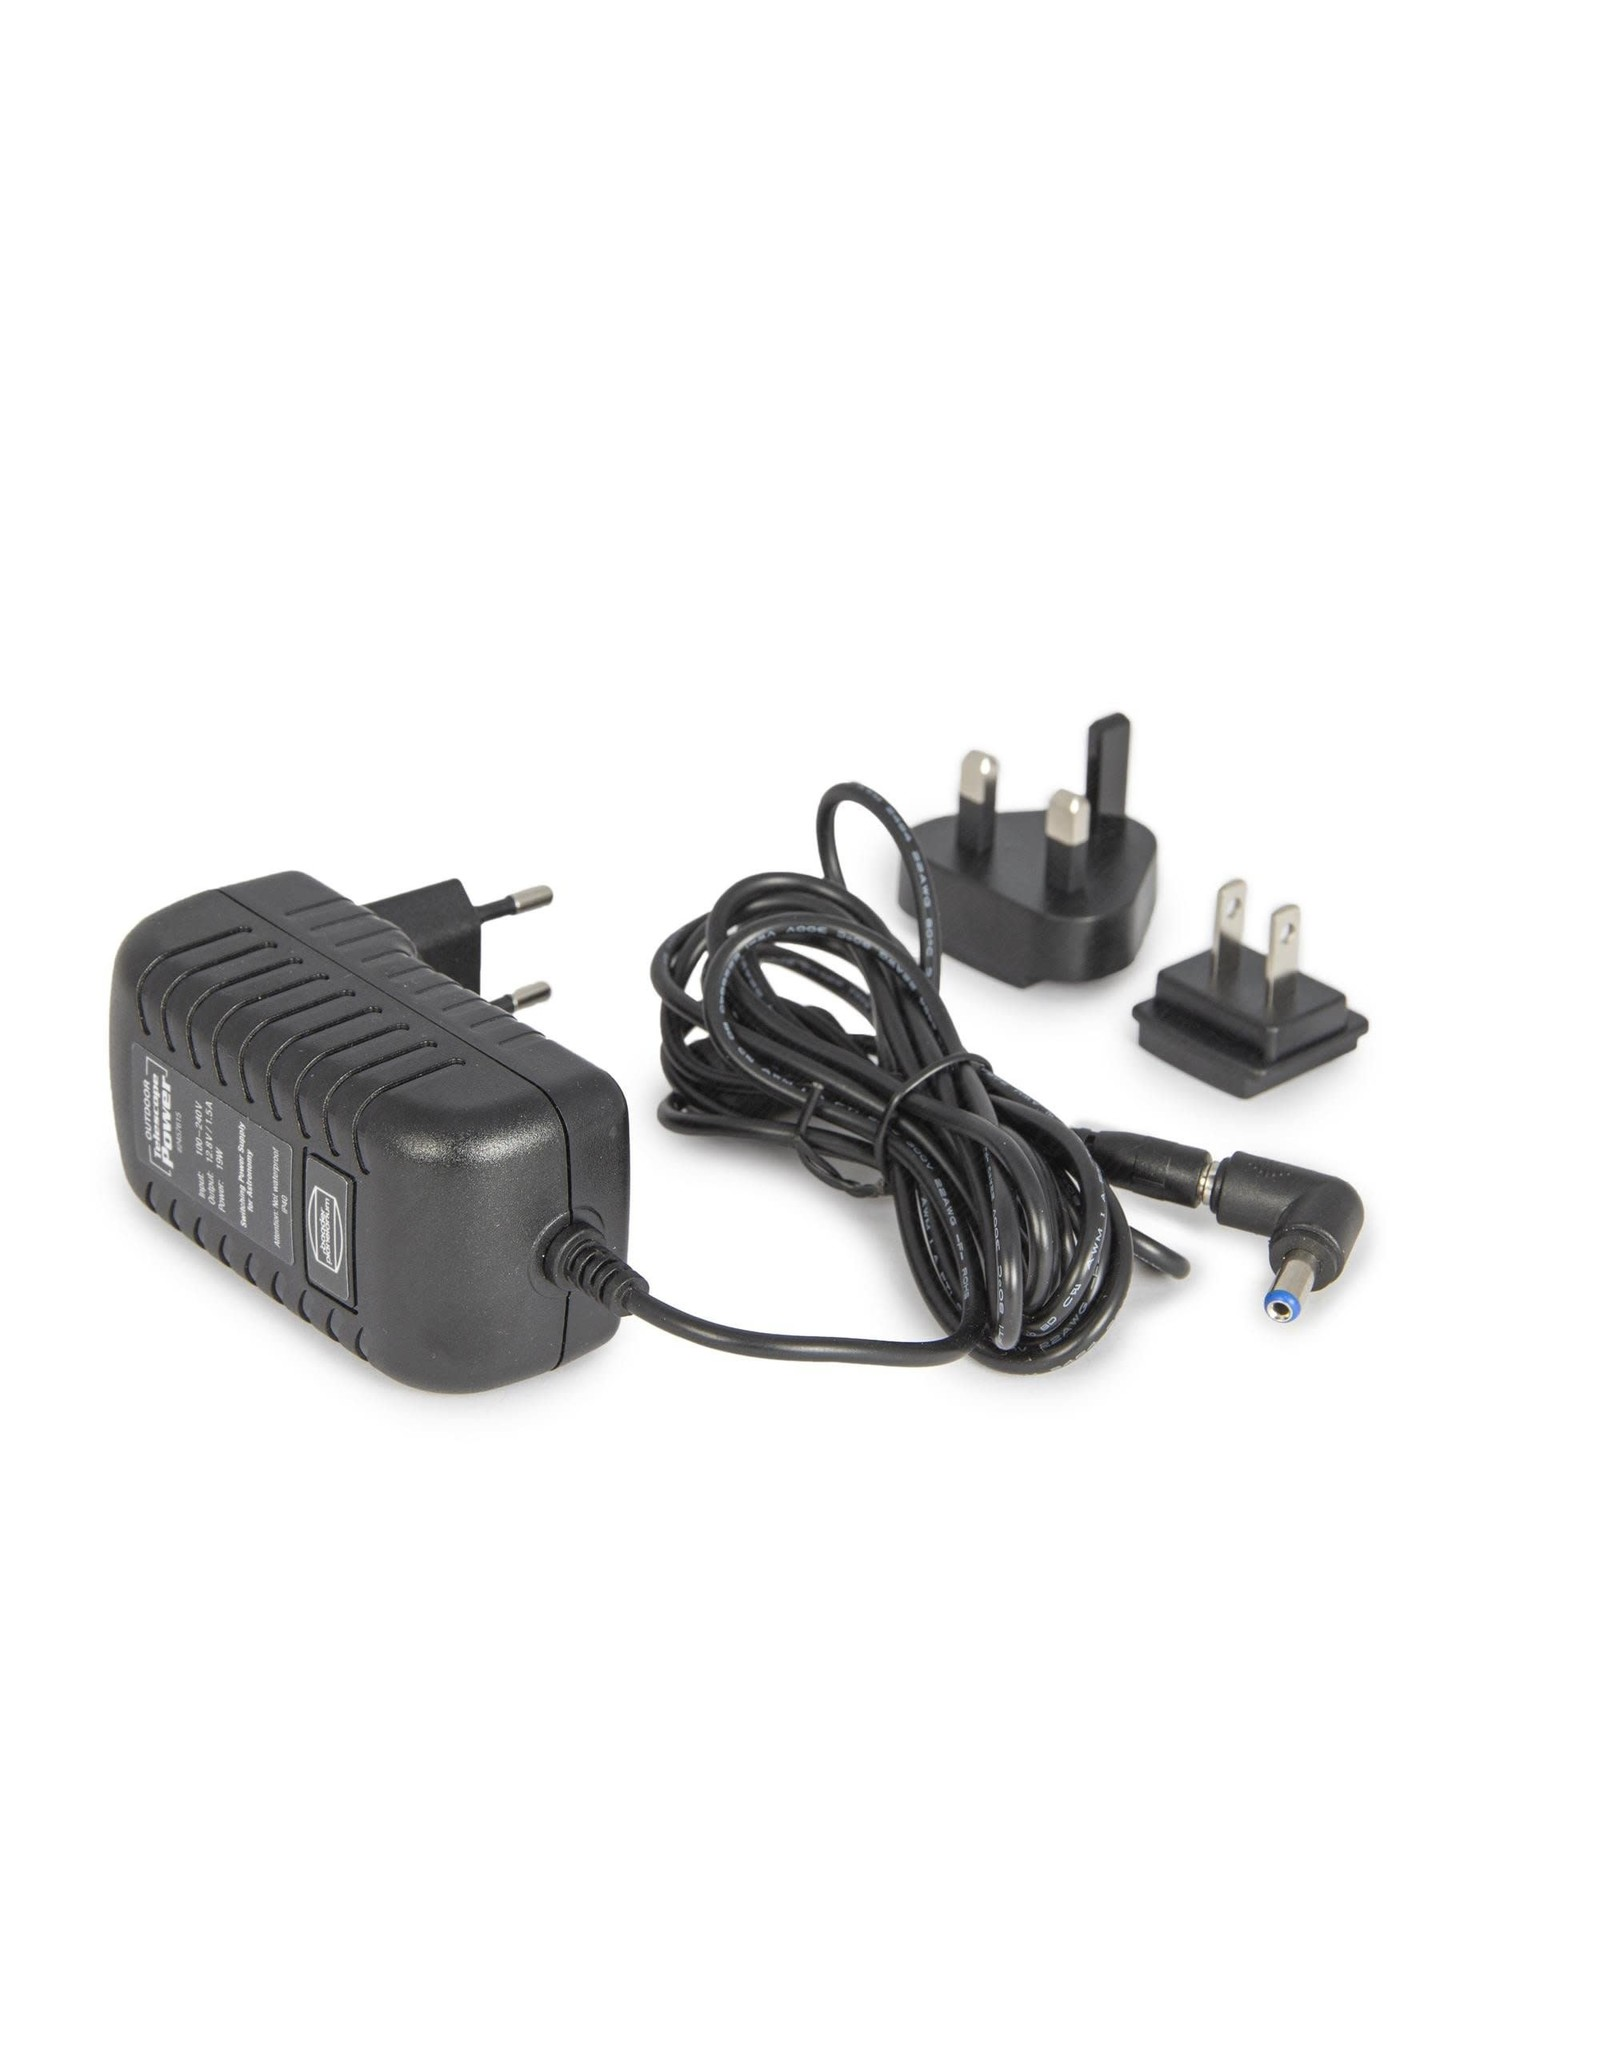 Baader Planetarium Baader OTP II 19W: Outdoor Telescope Power Switch with elbowed plug